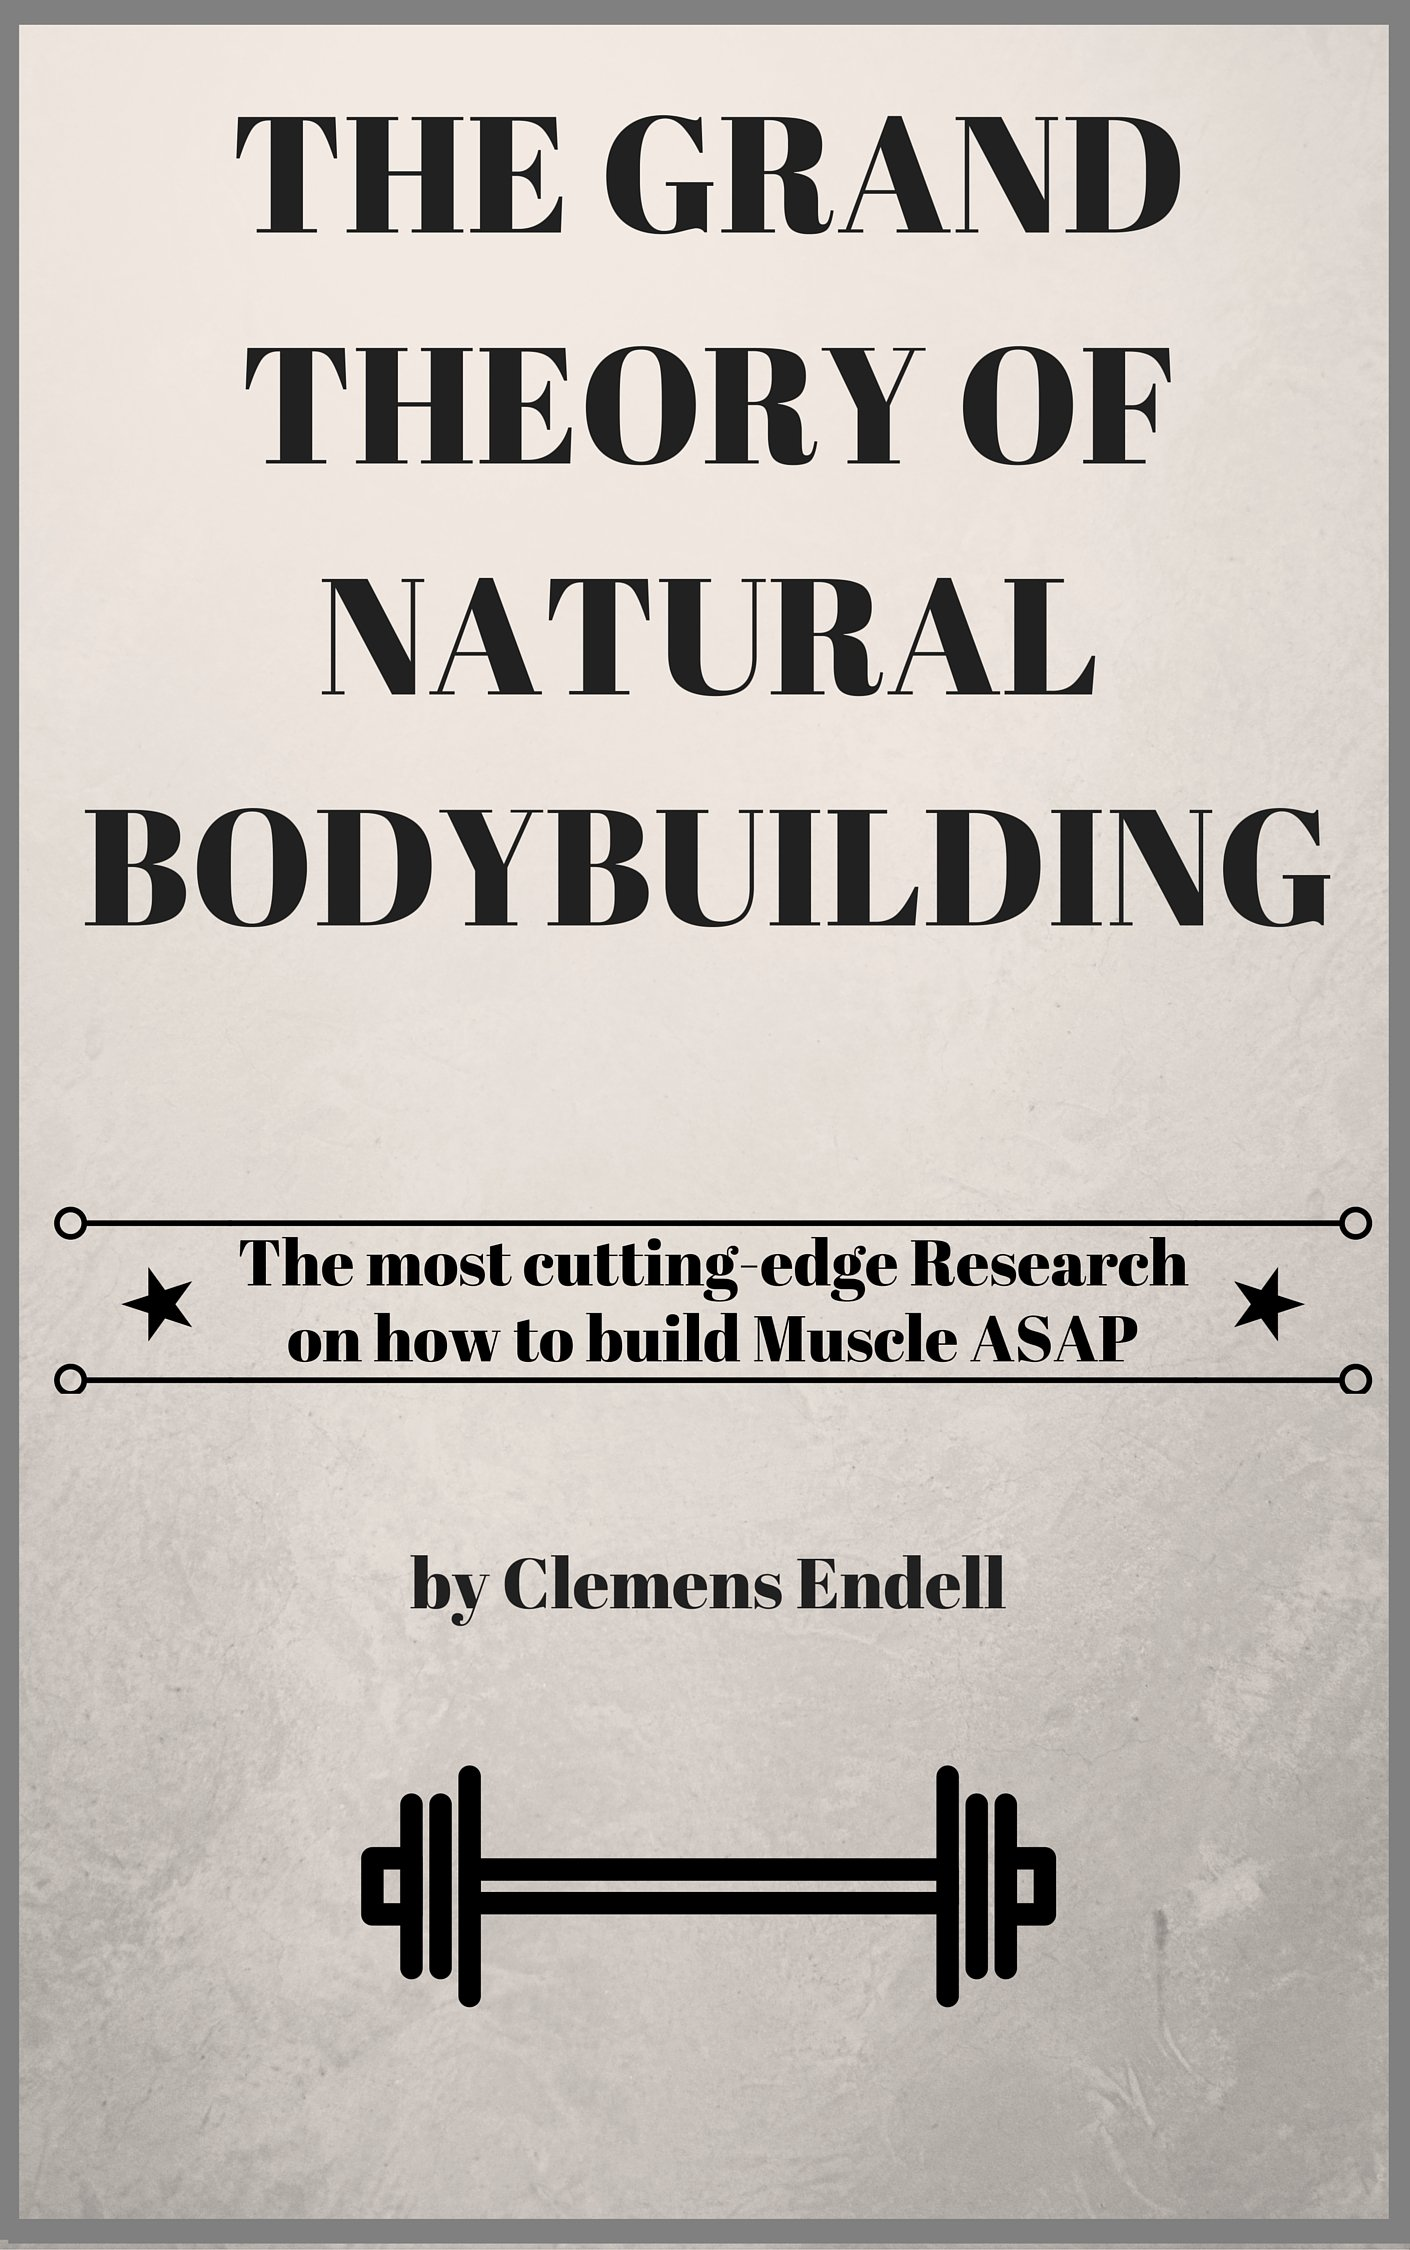 Image OfThe Grand Theory Of Natural Bodybuilding: The Most Cutting-edge Research On How To Build Muscle ASAP (English Edition)